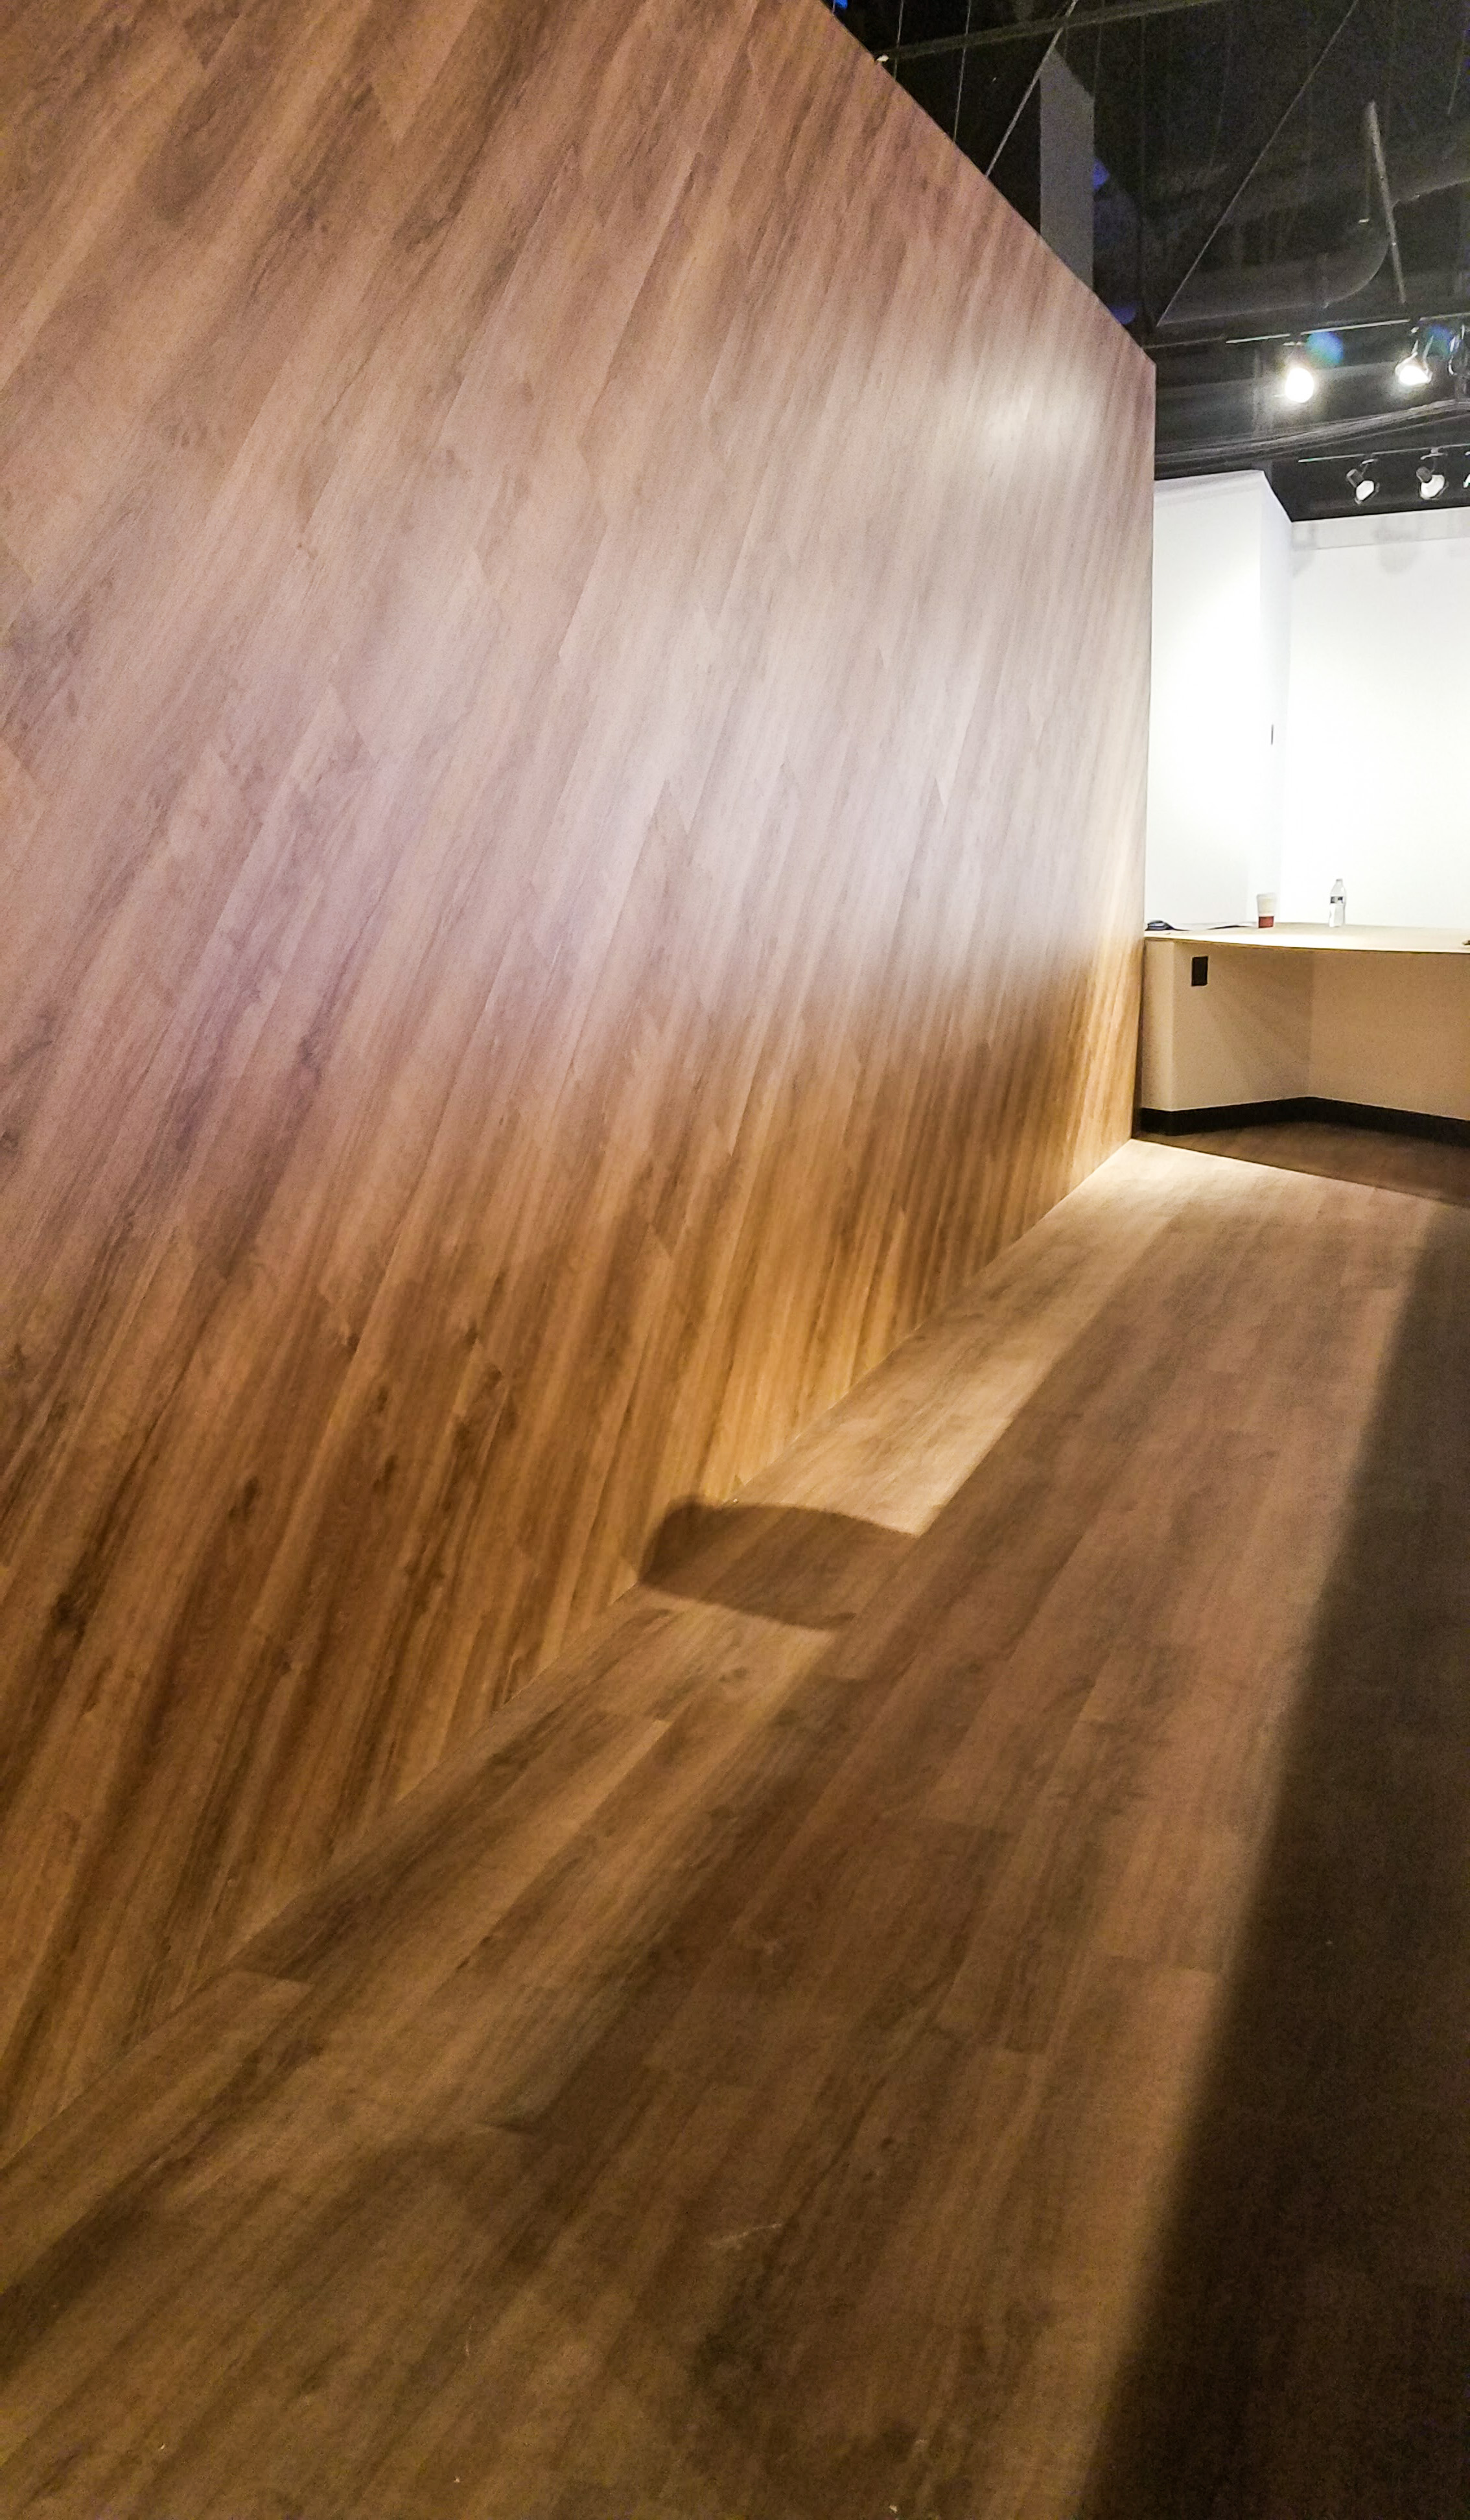 Vinyl LVT Accent Wall.jpg